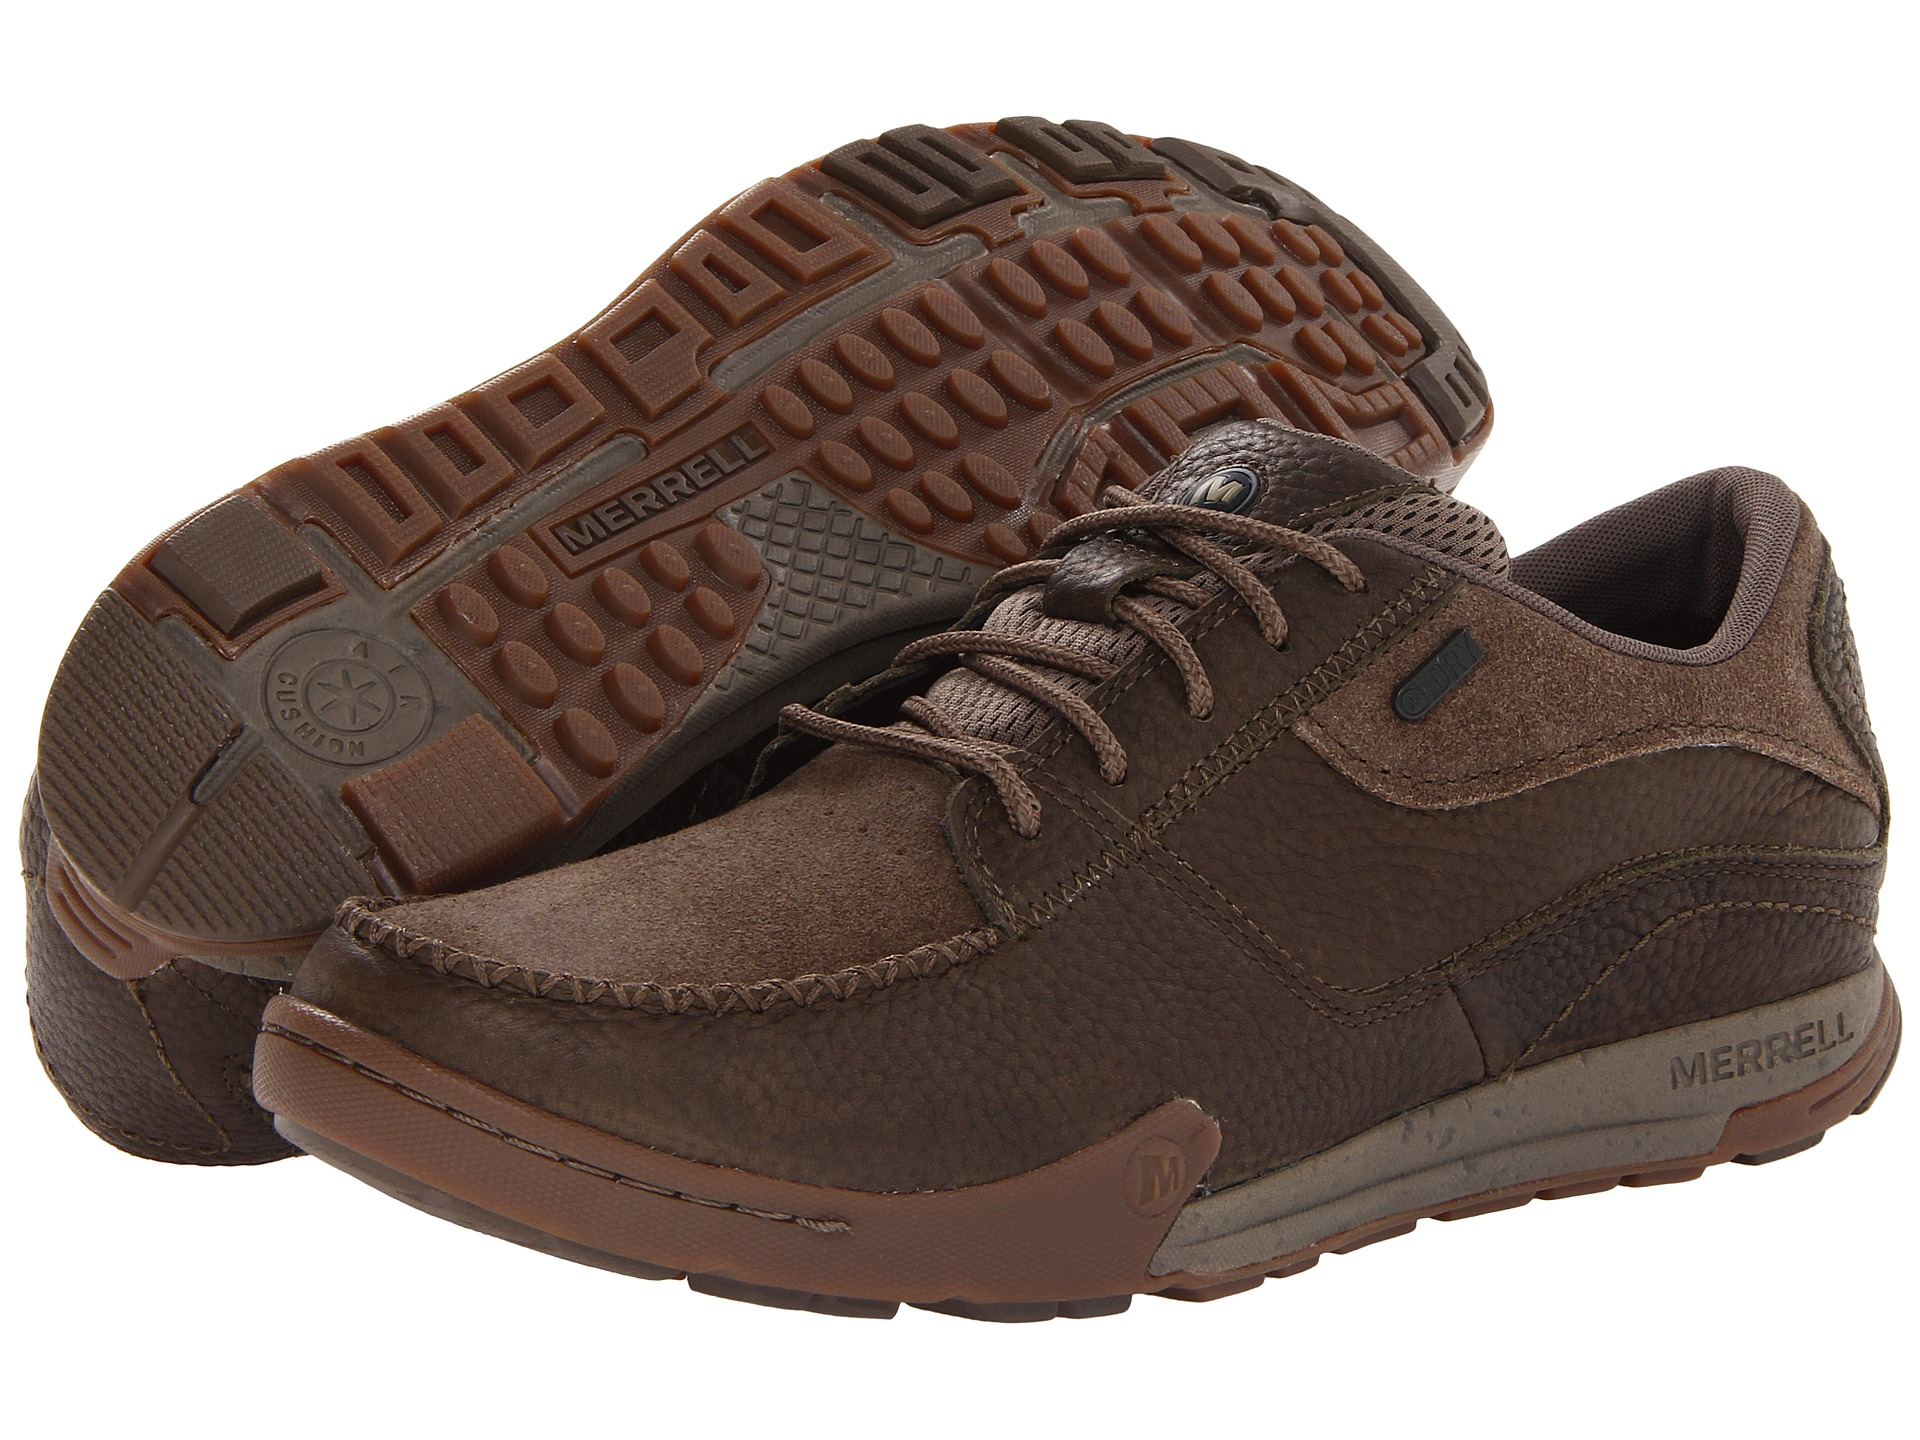 Merrell Shoes For Men Sale Images United States